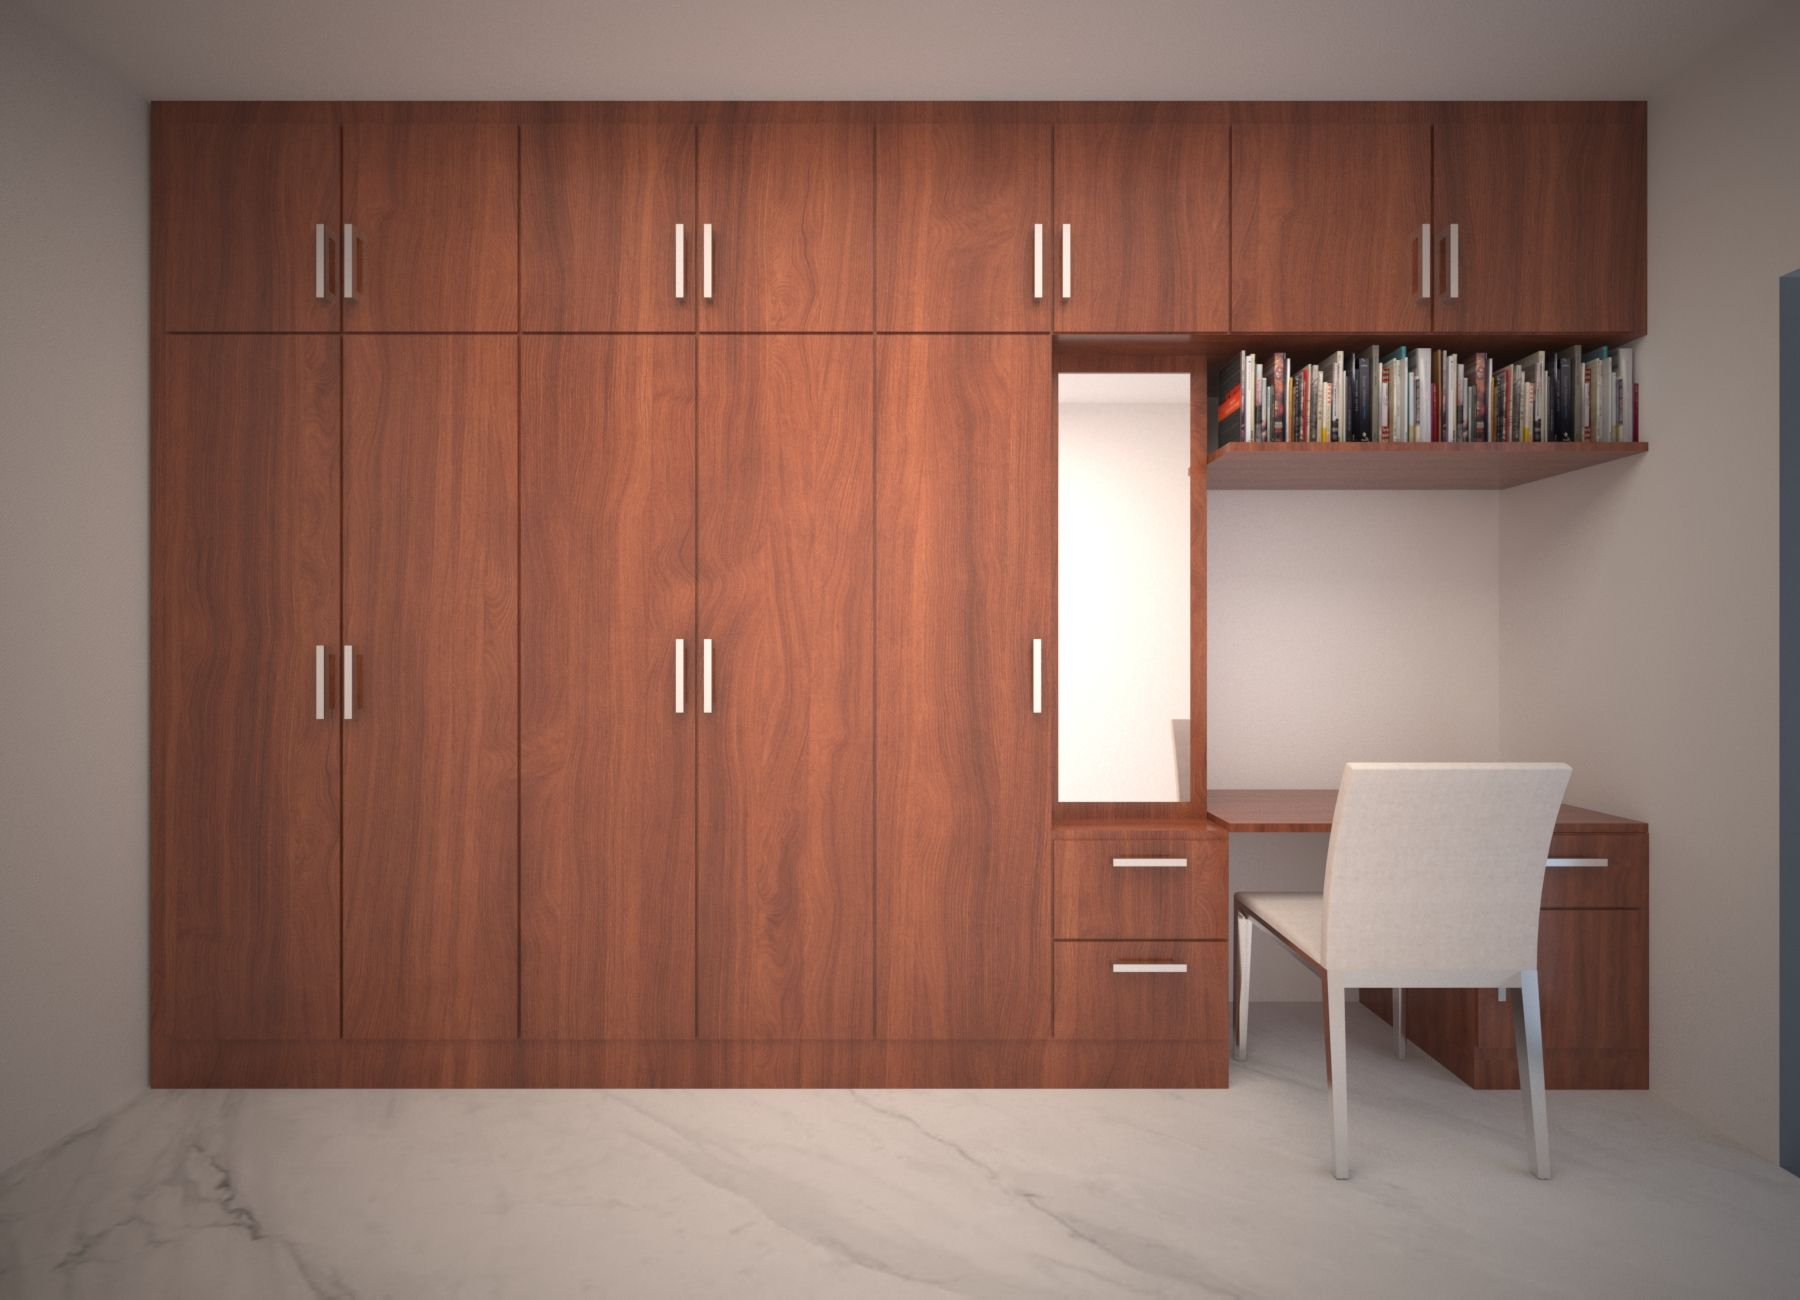 Wall To Wall Wardrobe For Master Bedroom With Side Study Table And Elegant Wood Finish Modern Cupboard Design Bedroom Cupboard Designs Cupboard Design